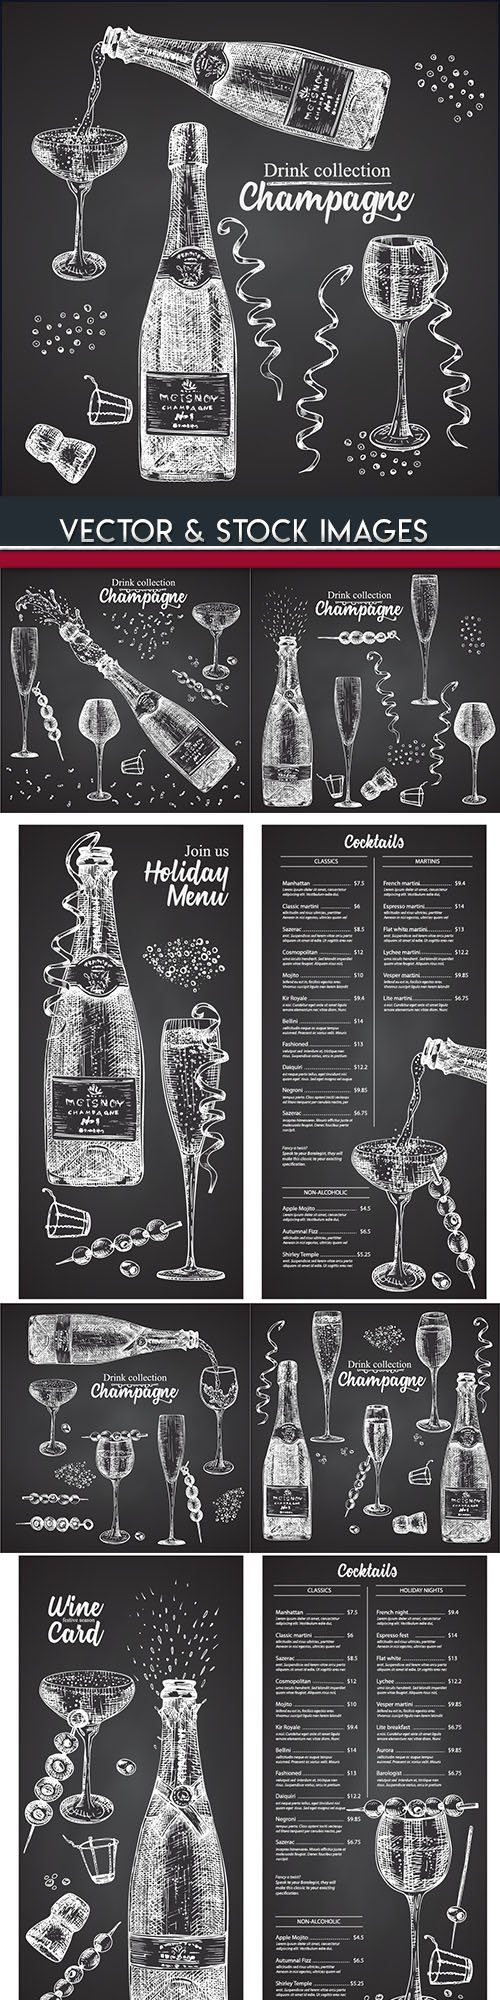 Champagne collection drinks drawn illustrations